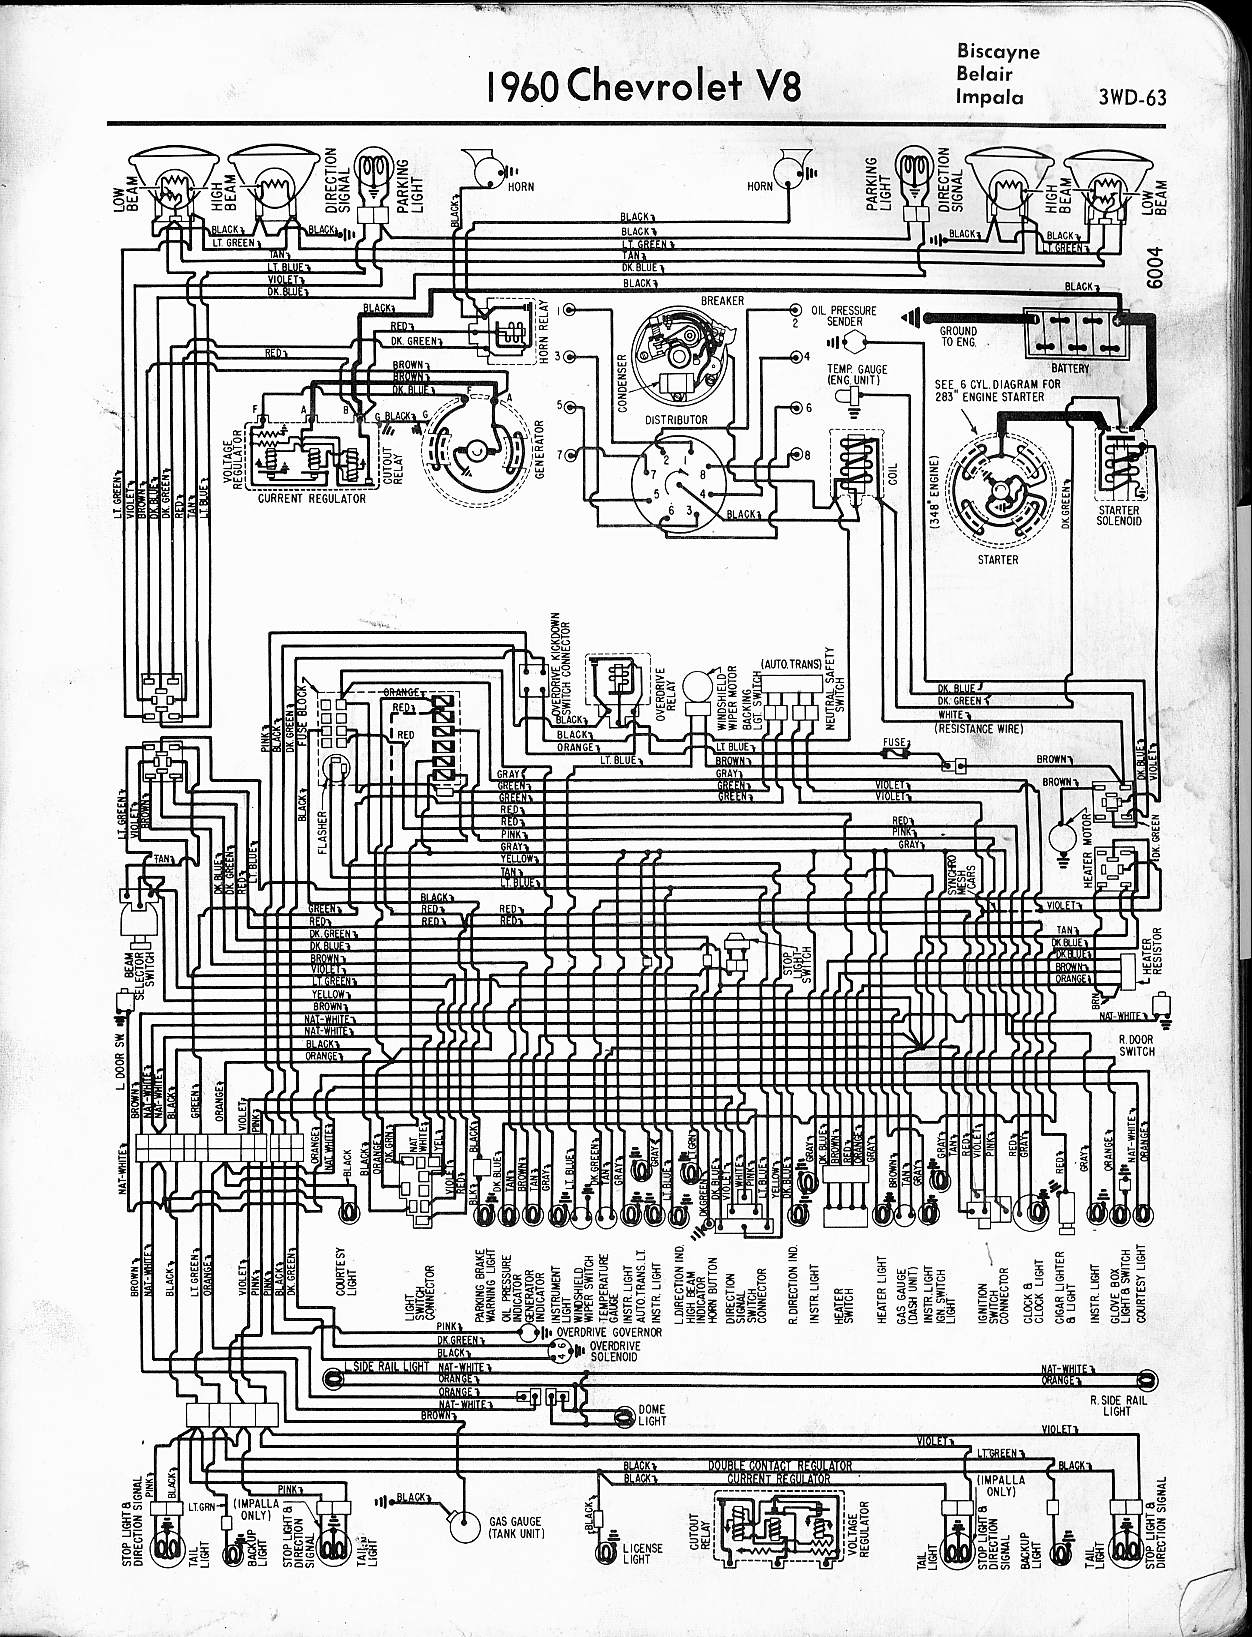 MWireChev60_3WD 063 57 65 chevy wiring diagrams 1962 impala wiring diagram at webbmarketing.co